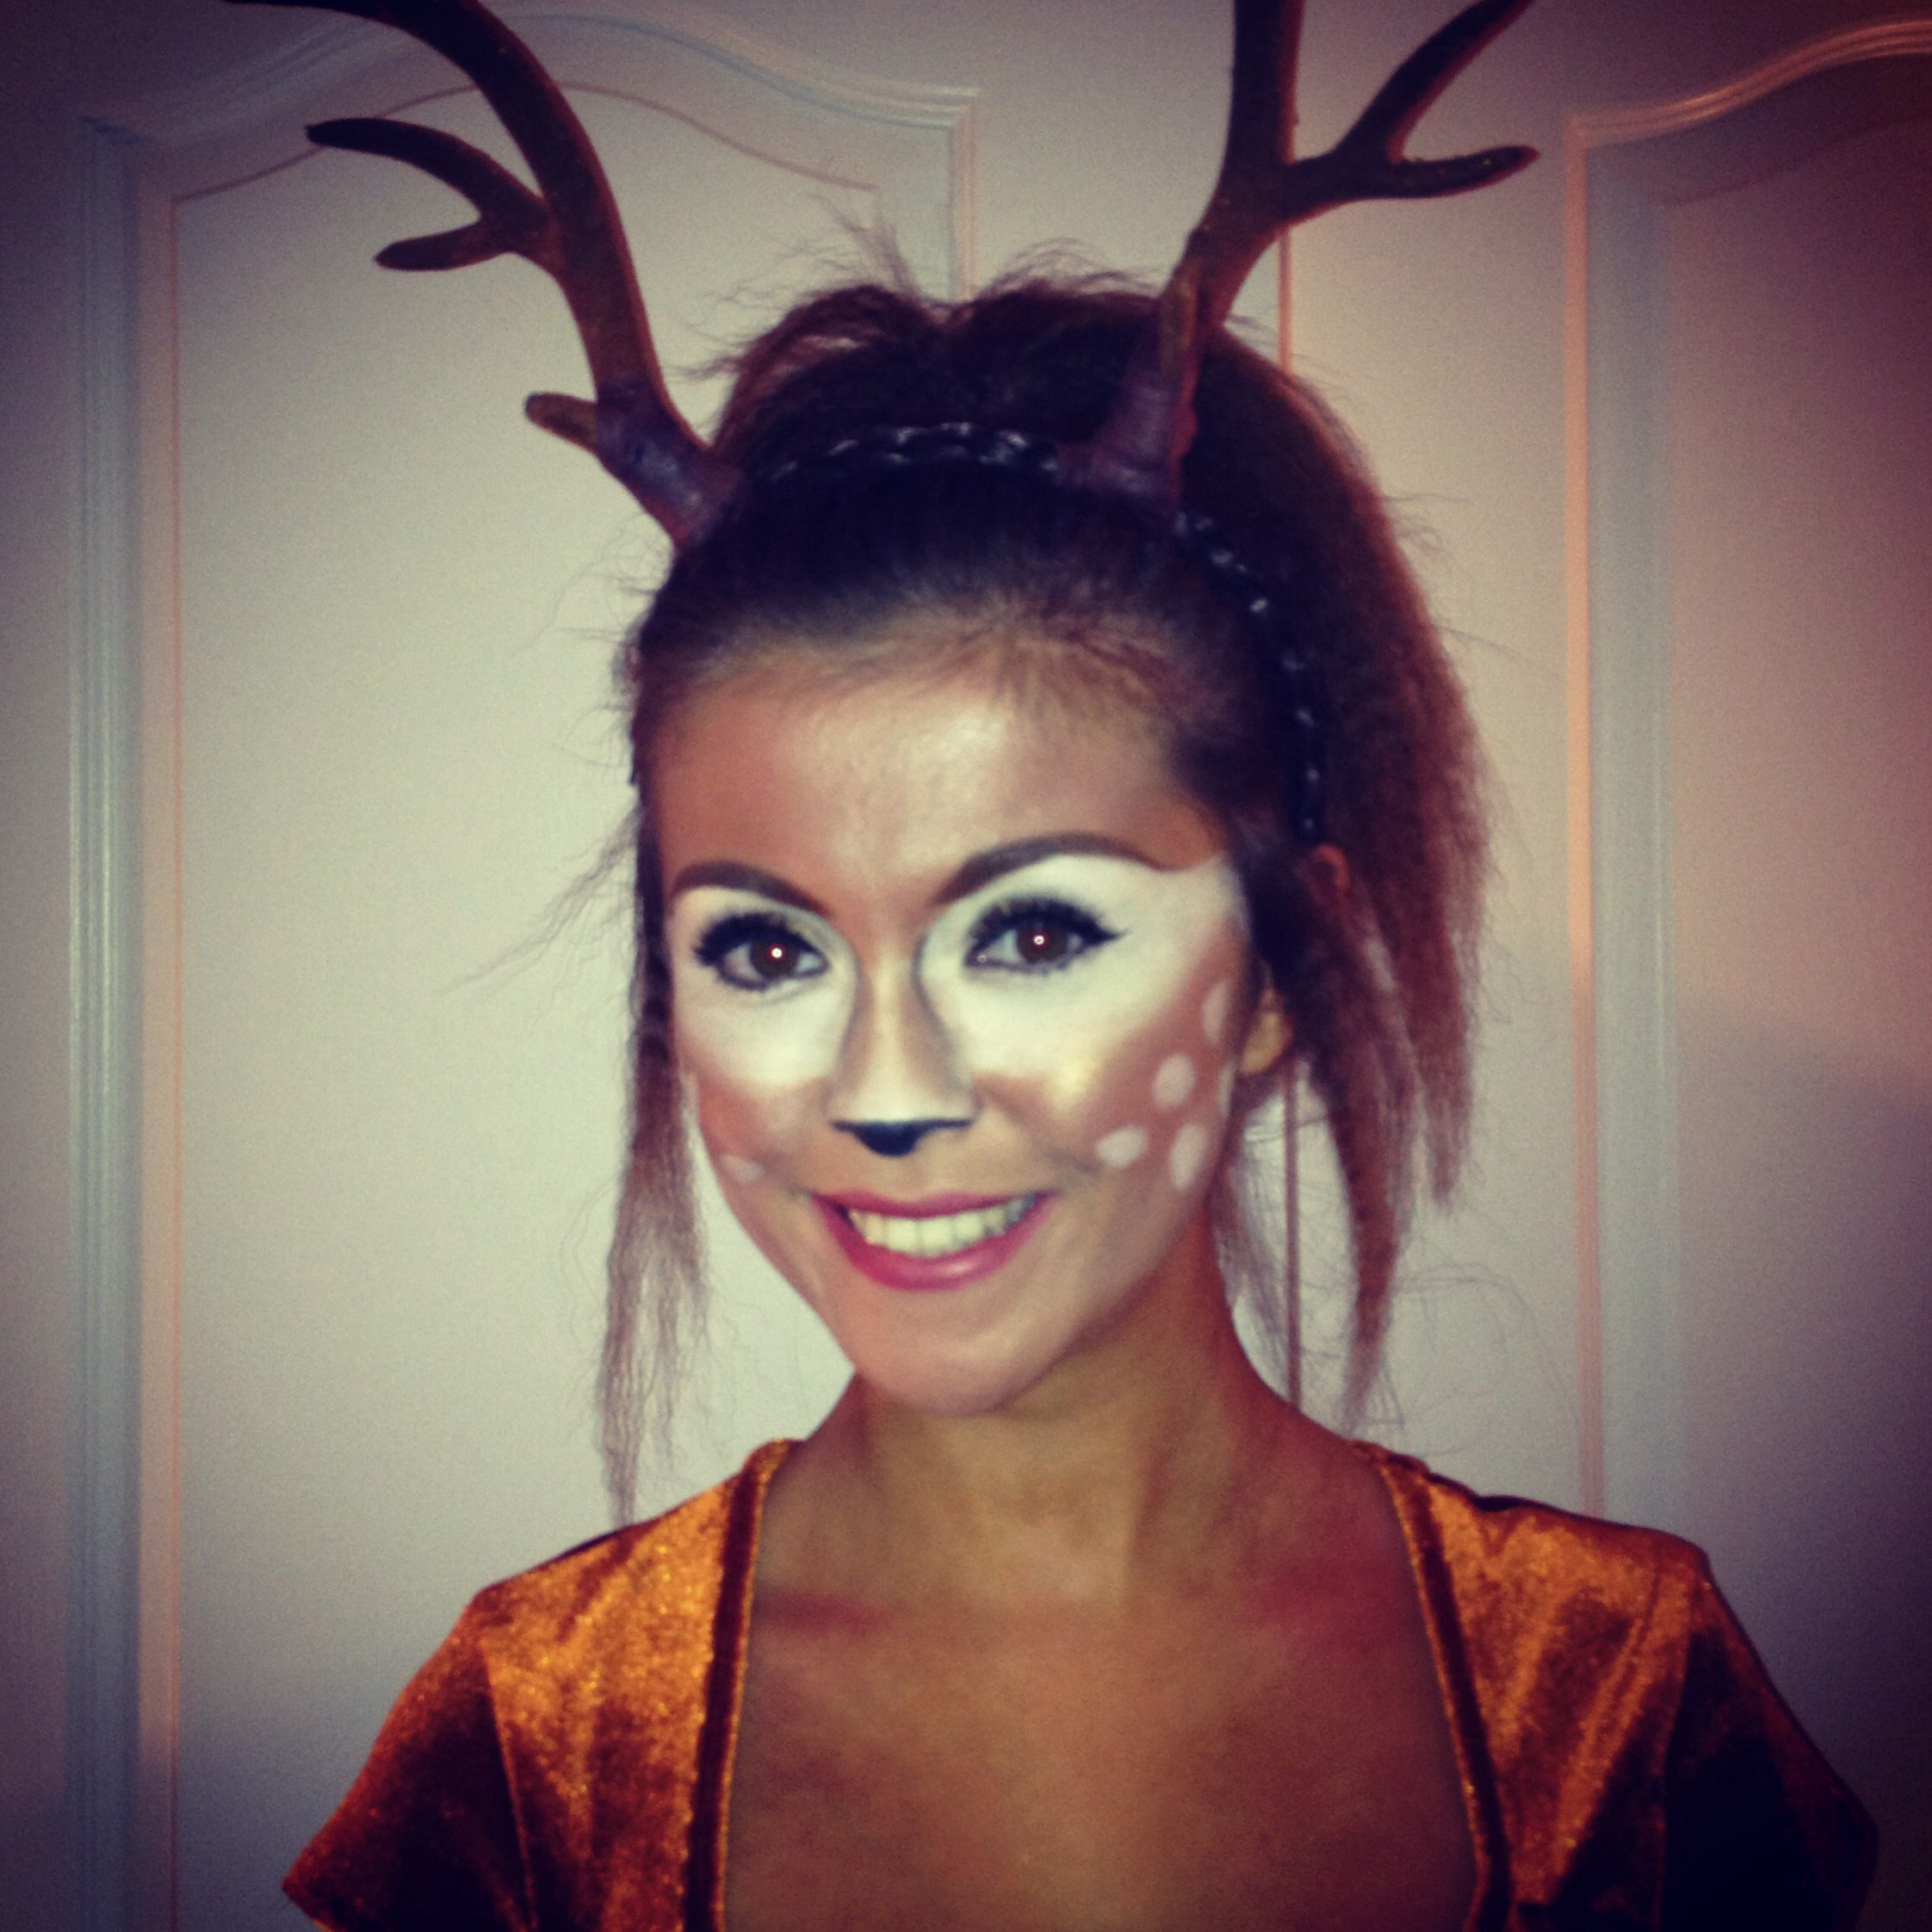 my bambi make up makeup bambi disney bambimakeup deer costume cute costumes pinterest. Black Bedroom Furniture Sets. Home Design Ideas